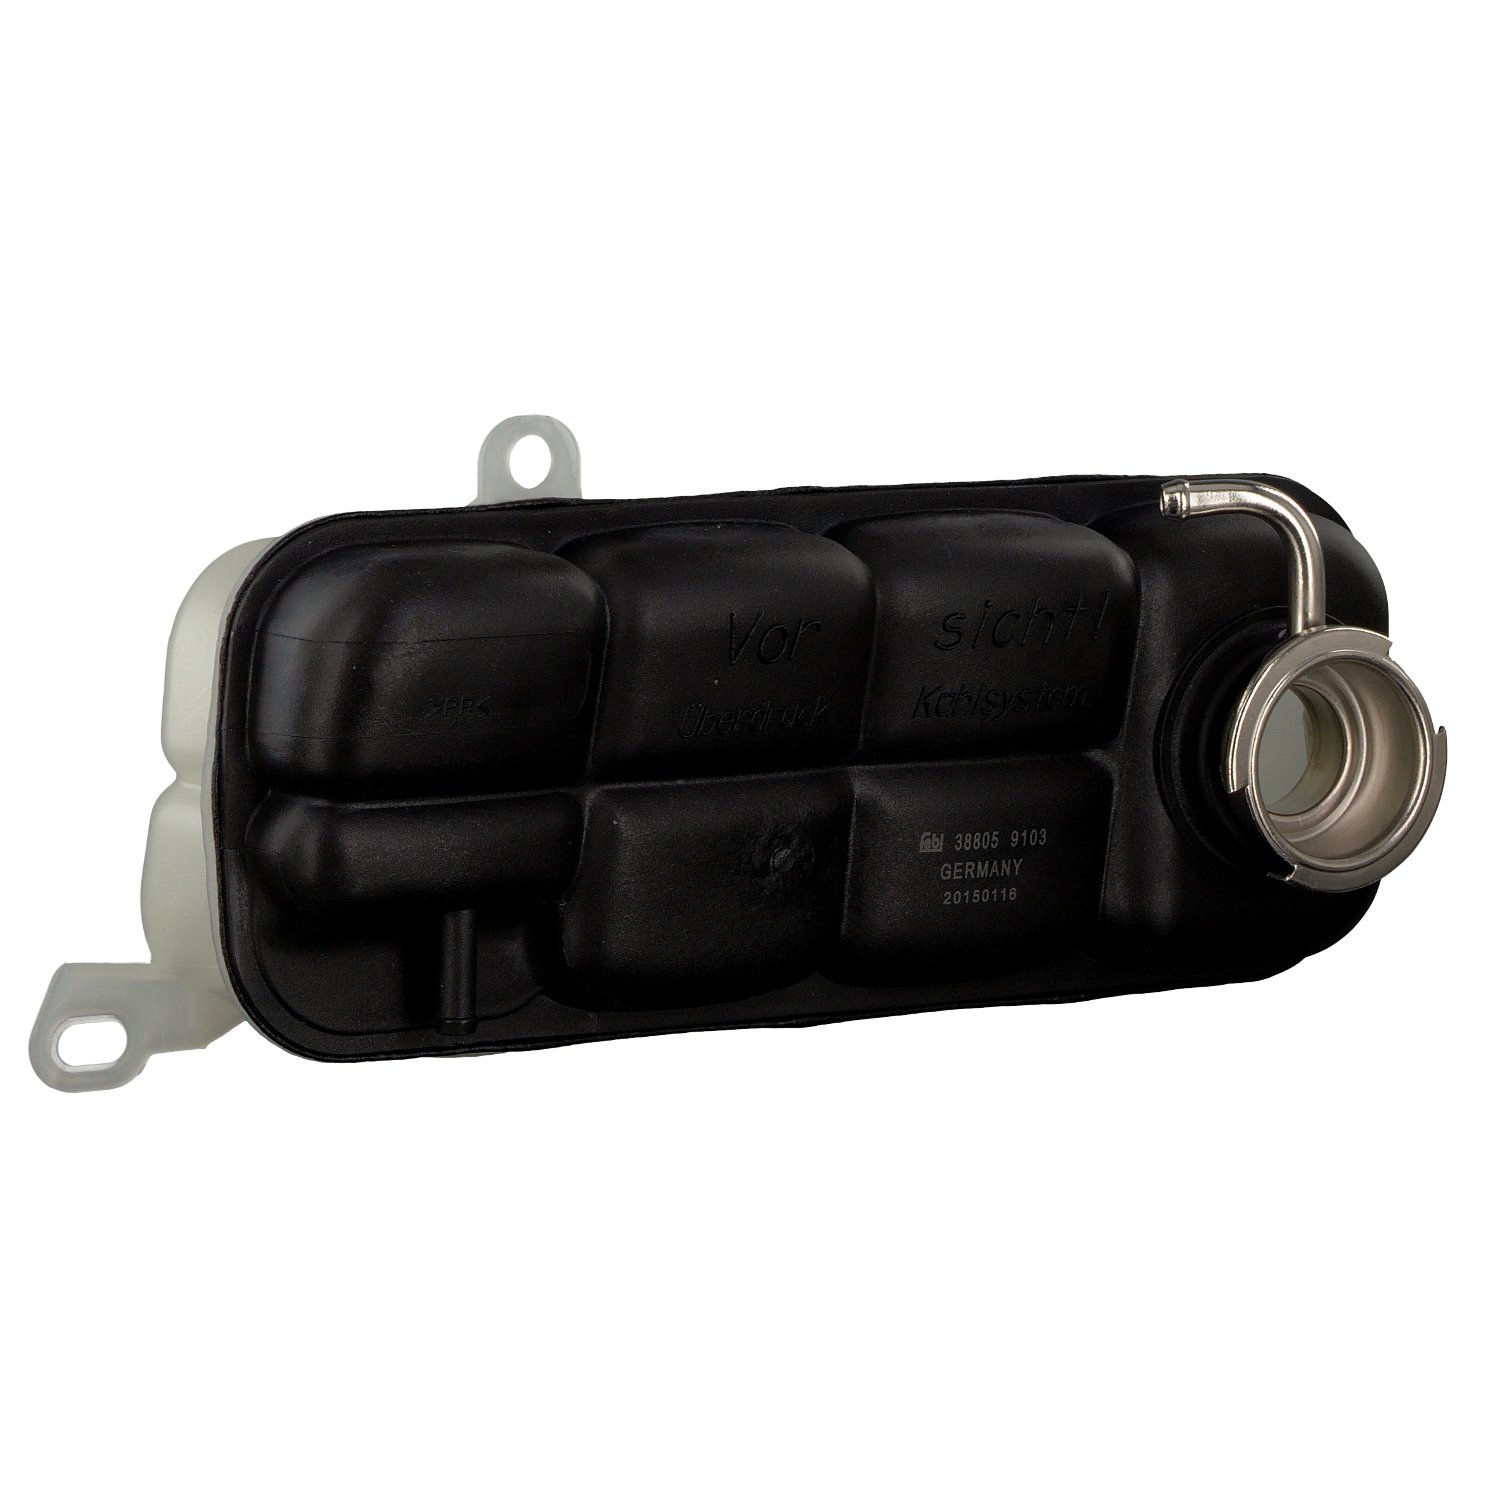 febi bilstein 38805 Coolant Expansion Tank pack of one